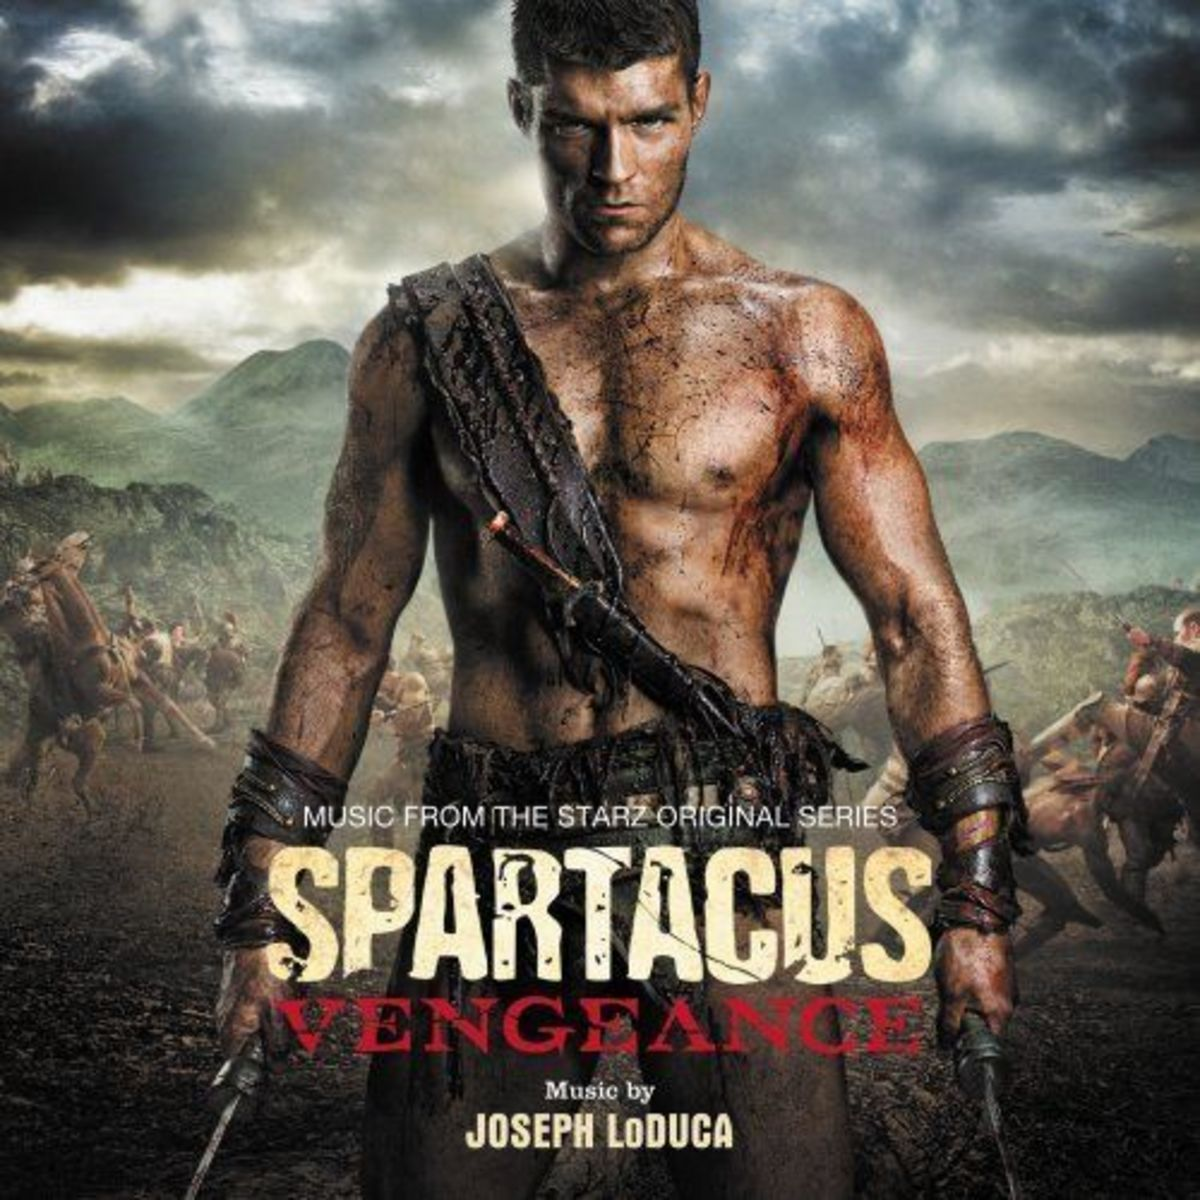 Spartacus | 11 Best Historical TV Shows Like Vikings